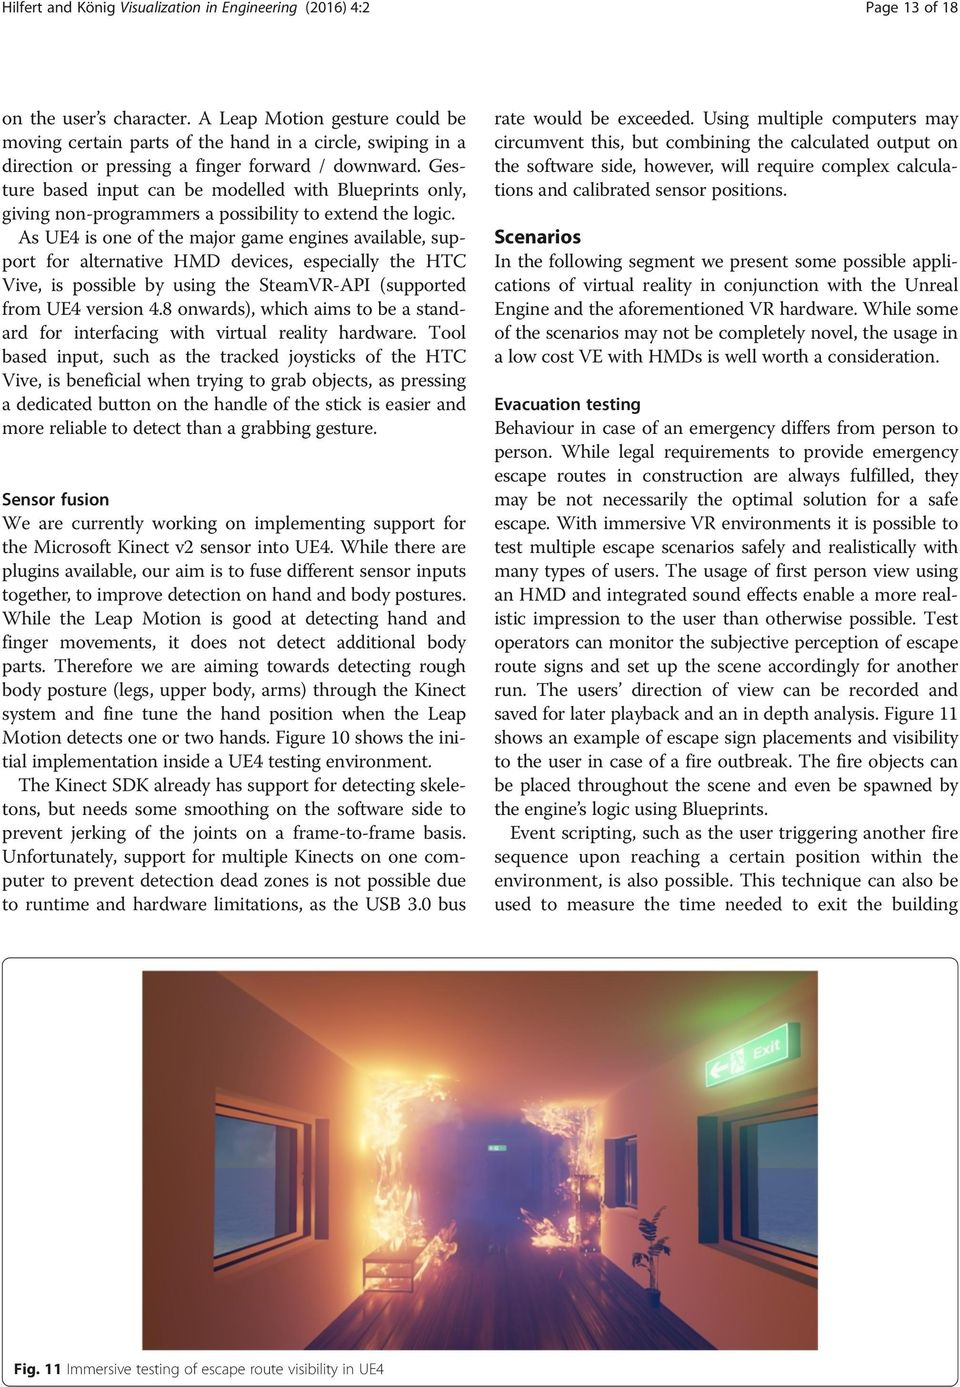 Low-cost virtual reality environment for engineering and